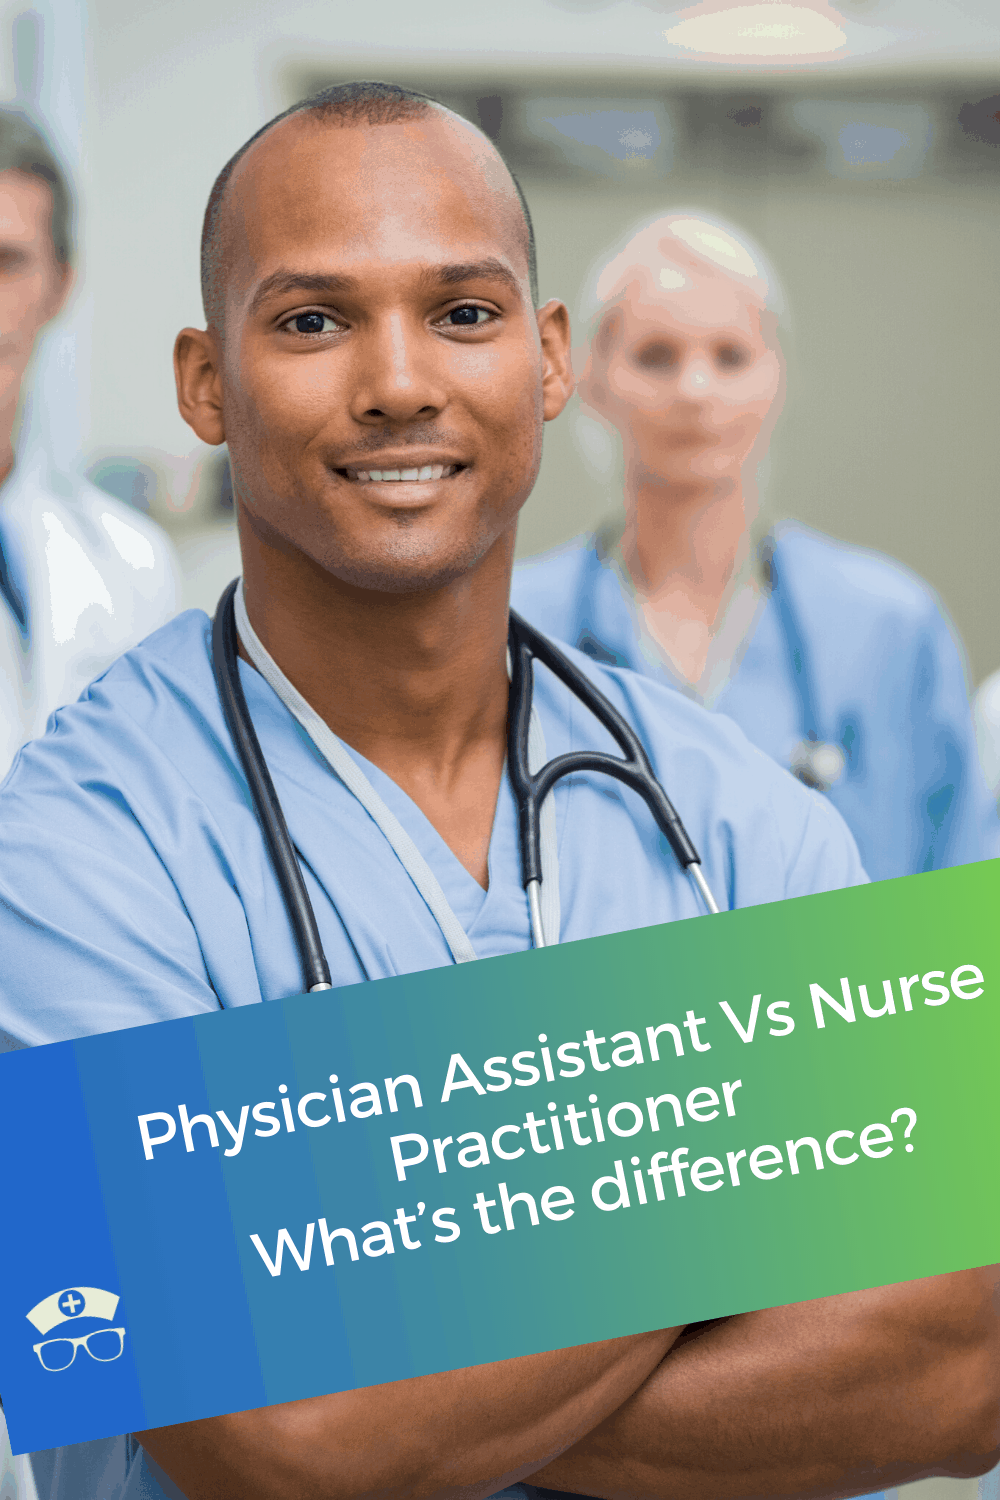 Physician Assistant Vs Nurse Practitioner - What's the difference? Are you debating between becoming a physician assistant vs nurse practitioner? Let's look at the differences so you can pick the right one for you. #thenerdynurse #nurse #nurses #nursespeciality #nursepractitioner #physicianassistant #pa #np